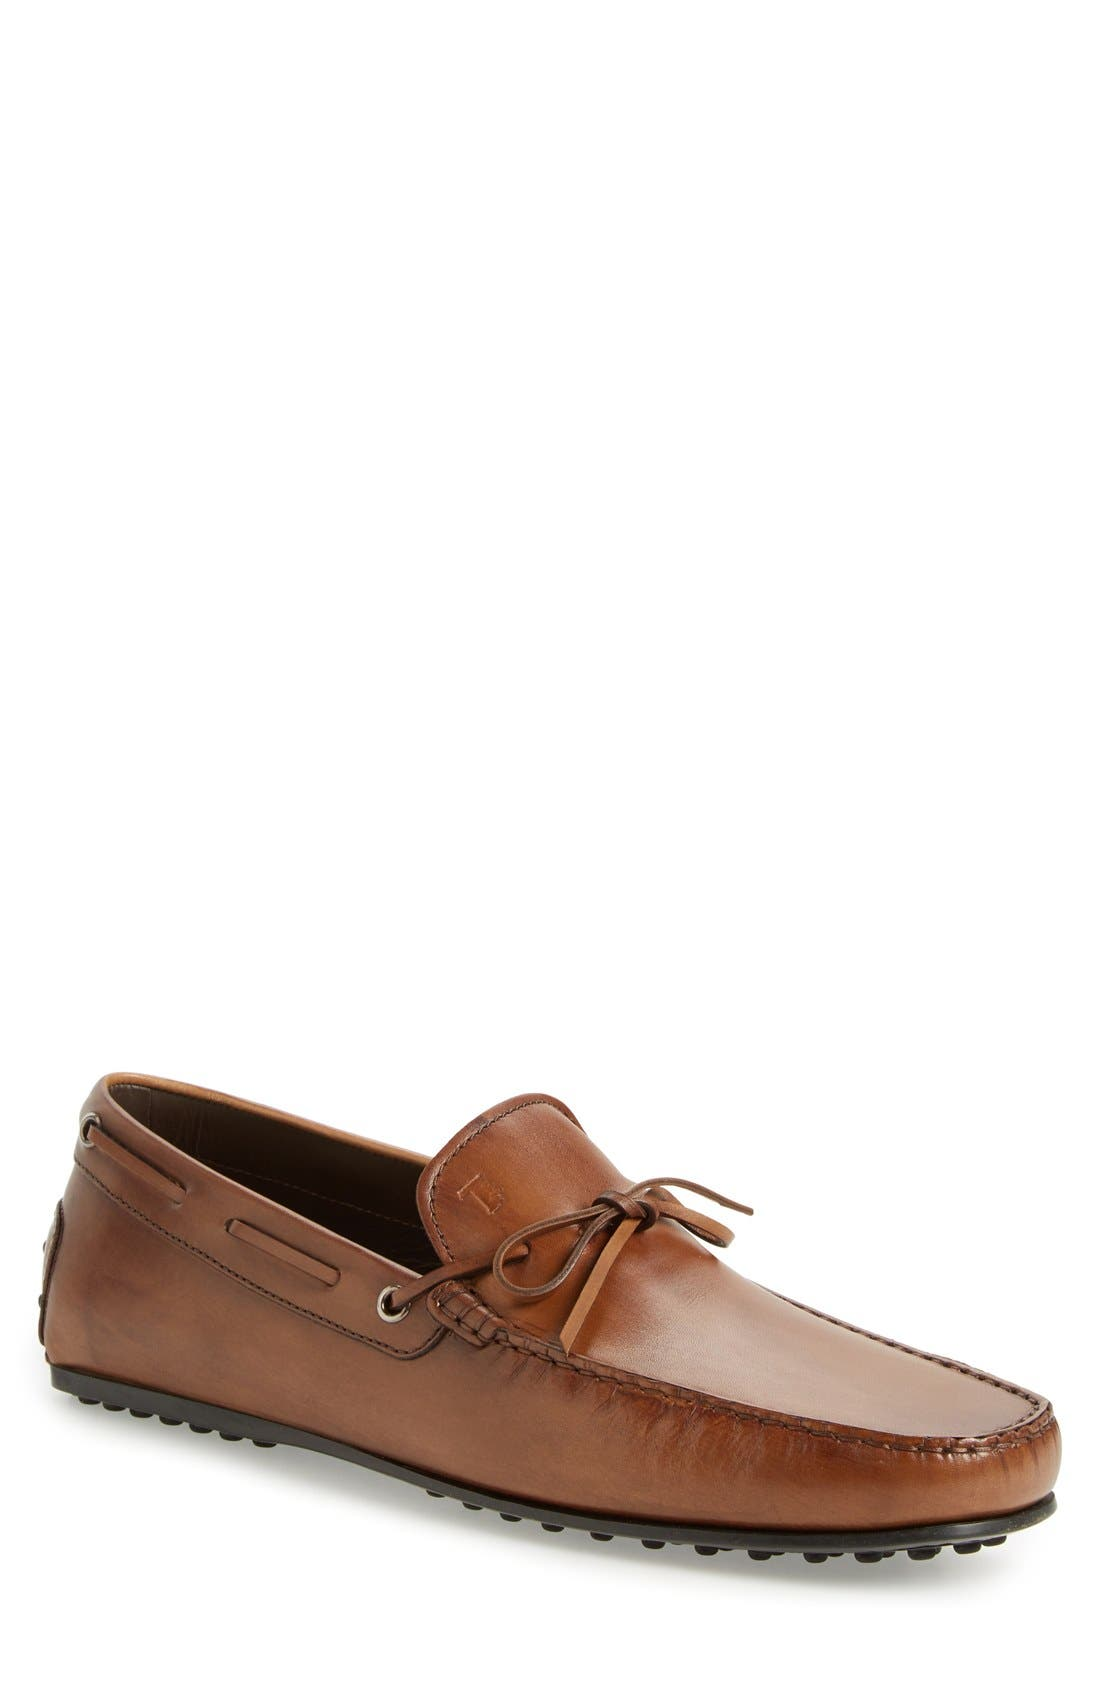 'City Gommini' Tie Front Driving Moccasin,                             Main thumbnail 1, color,                             220